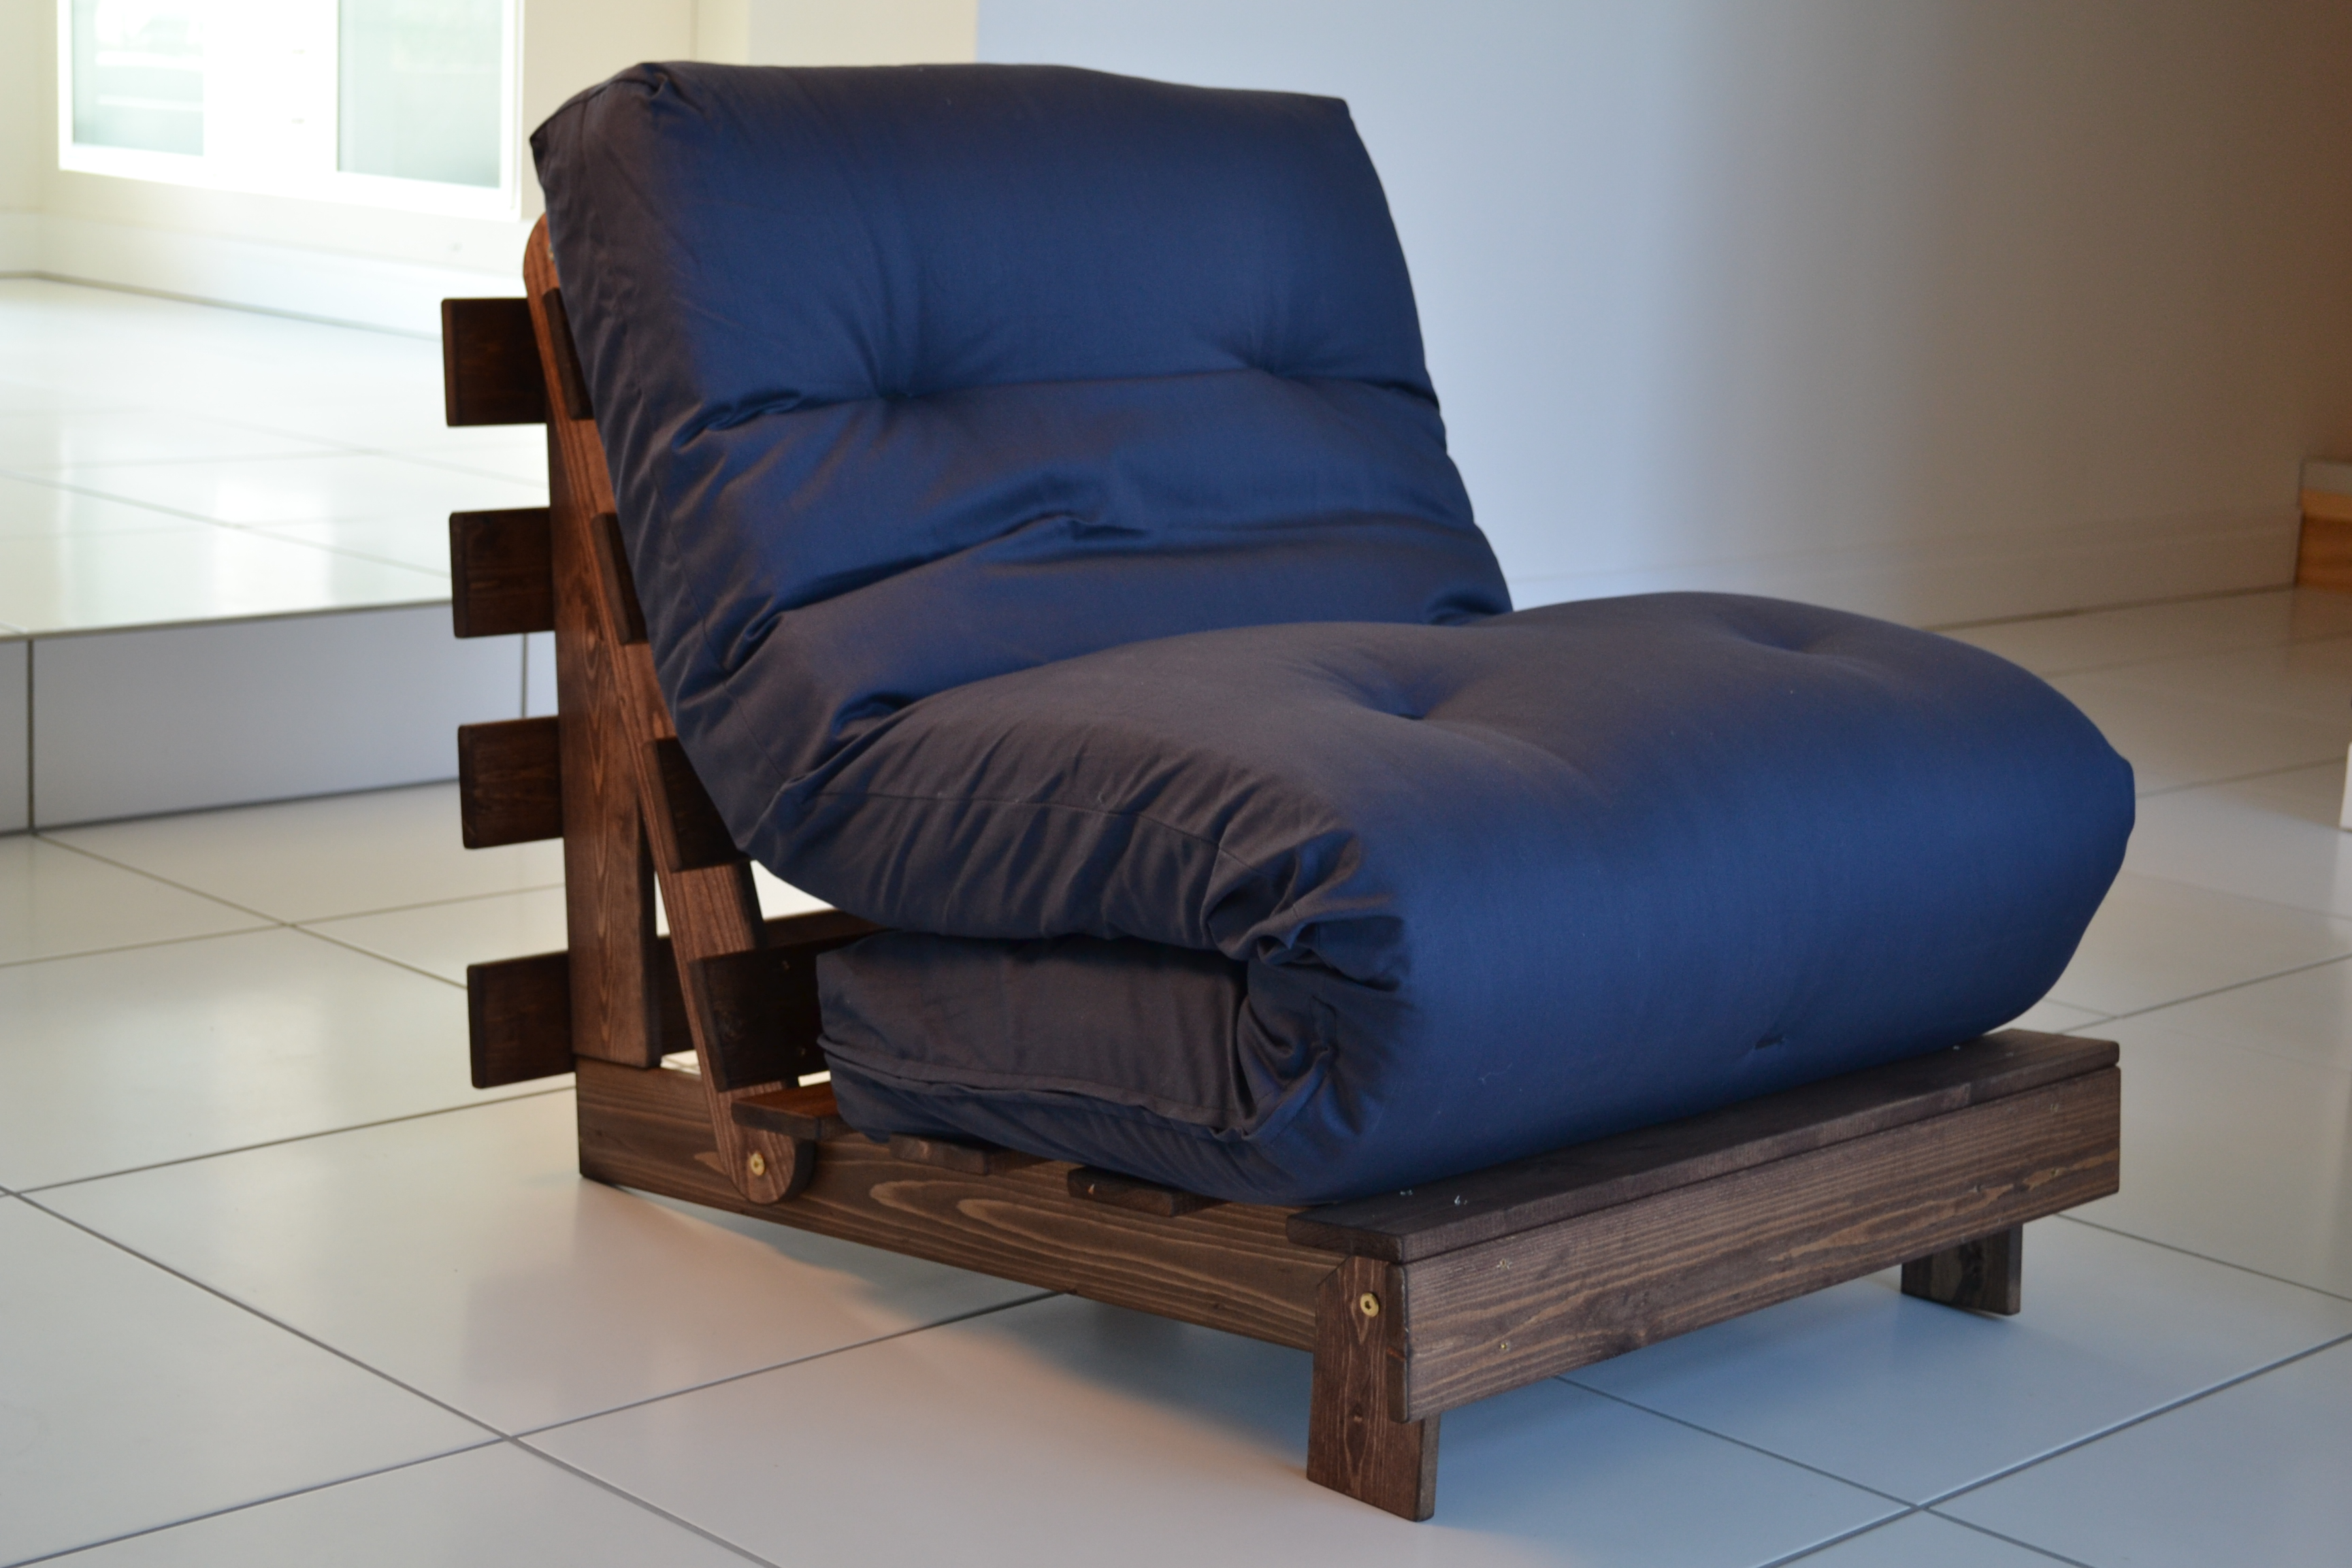 A Blue Futon Folded Up Onto Brown Diy Wood Pallet Chair